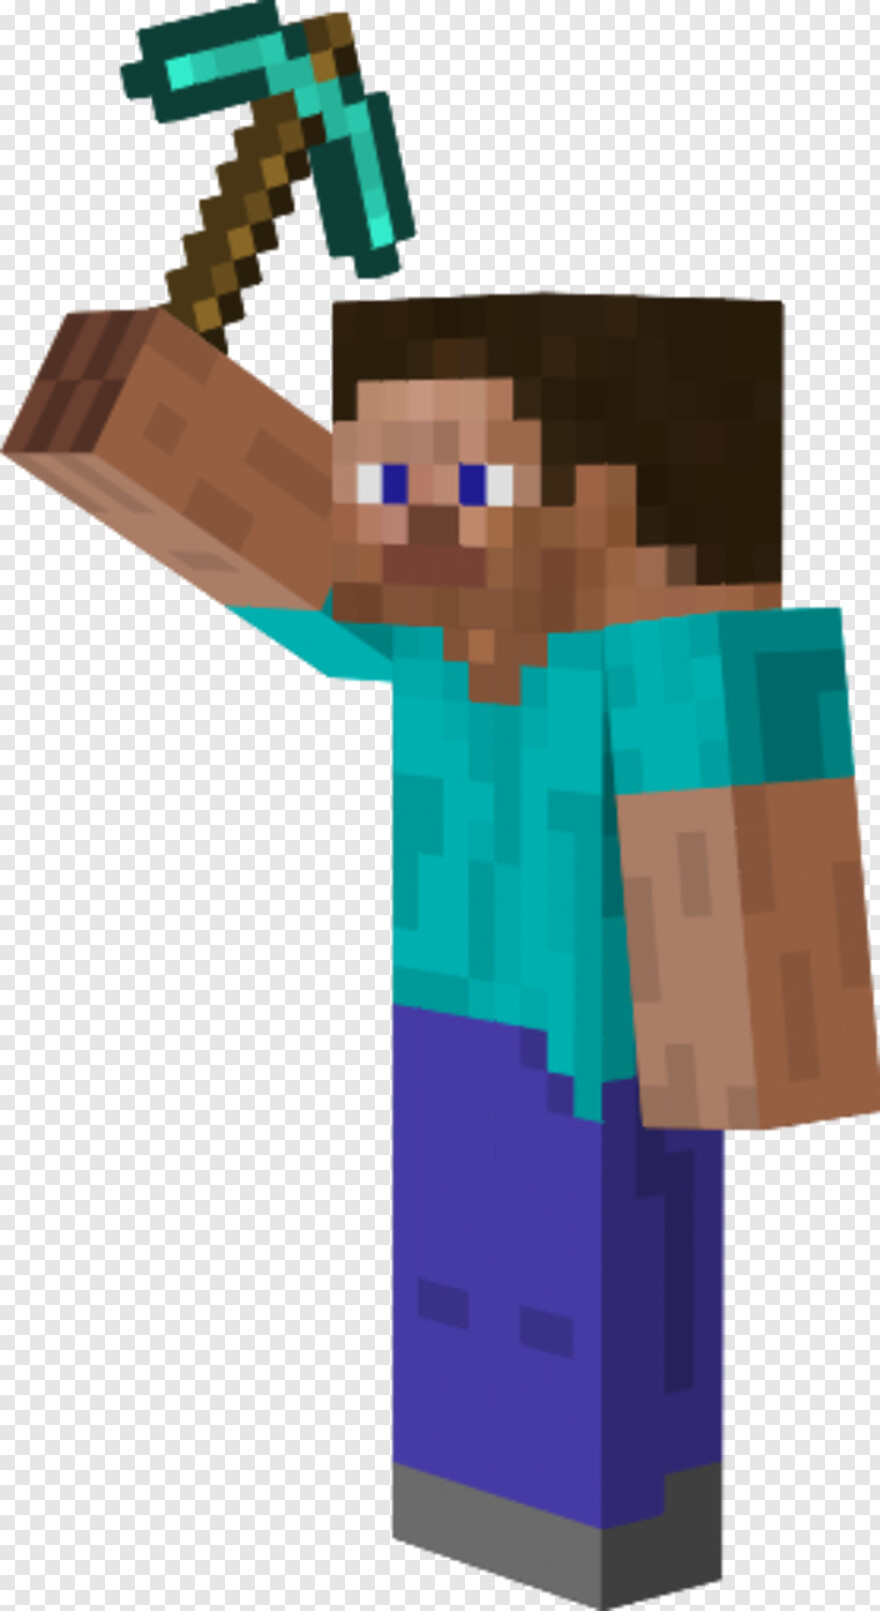 Minecraft Steve Minecraft Steve With Pickaxe Hd Png Download 278x509 527224 Png Image Pngjoy